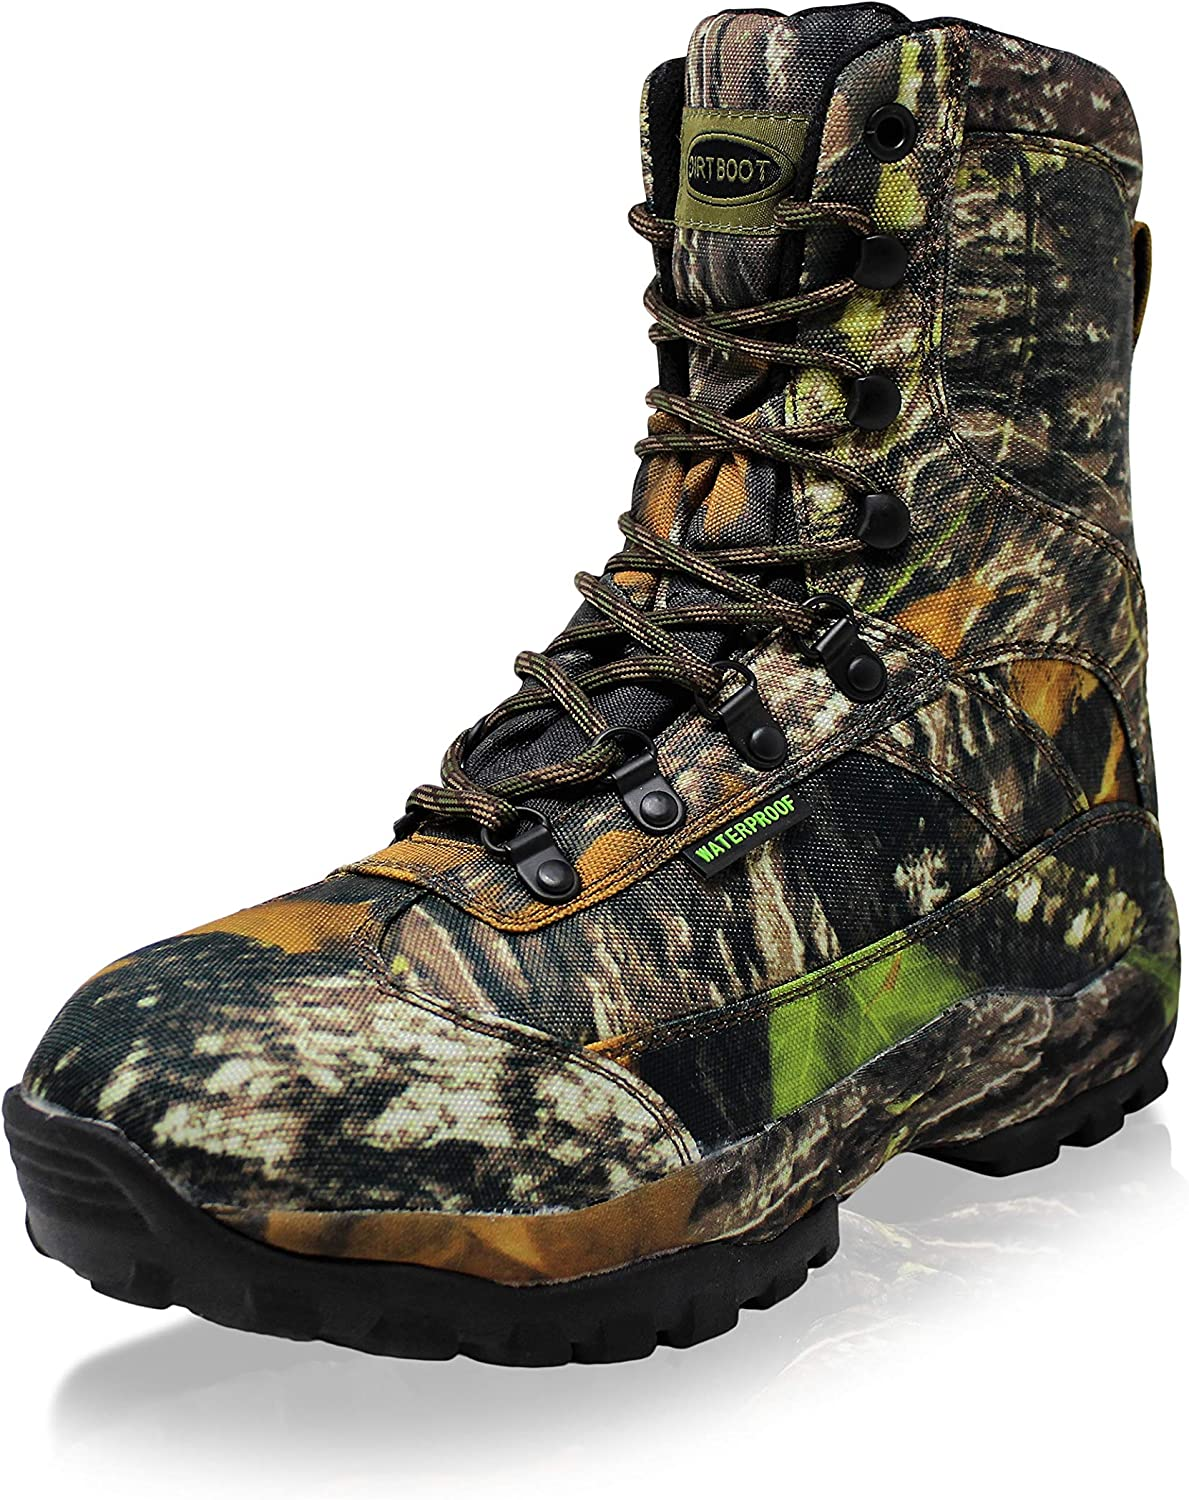 Dirt Boot Waterproof Tundra Hiking Ankle MUCK Boot Hunt CAMO